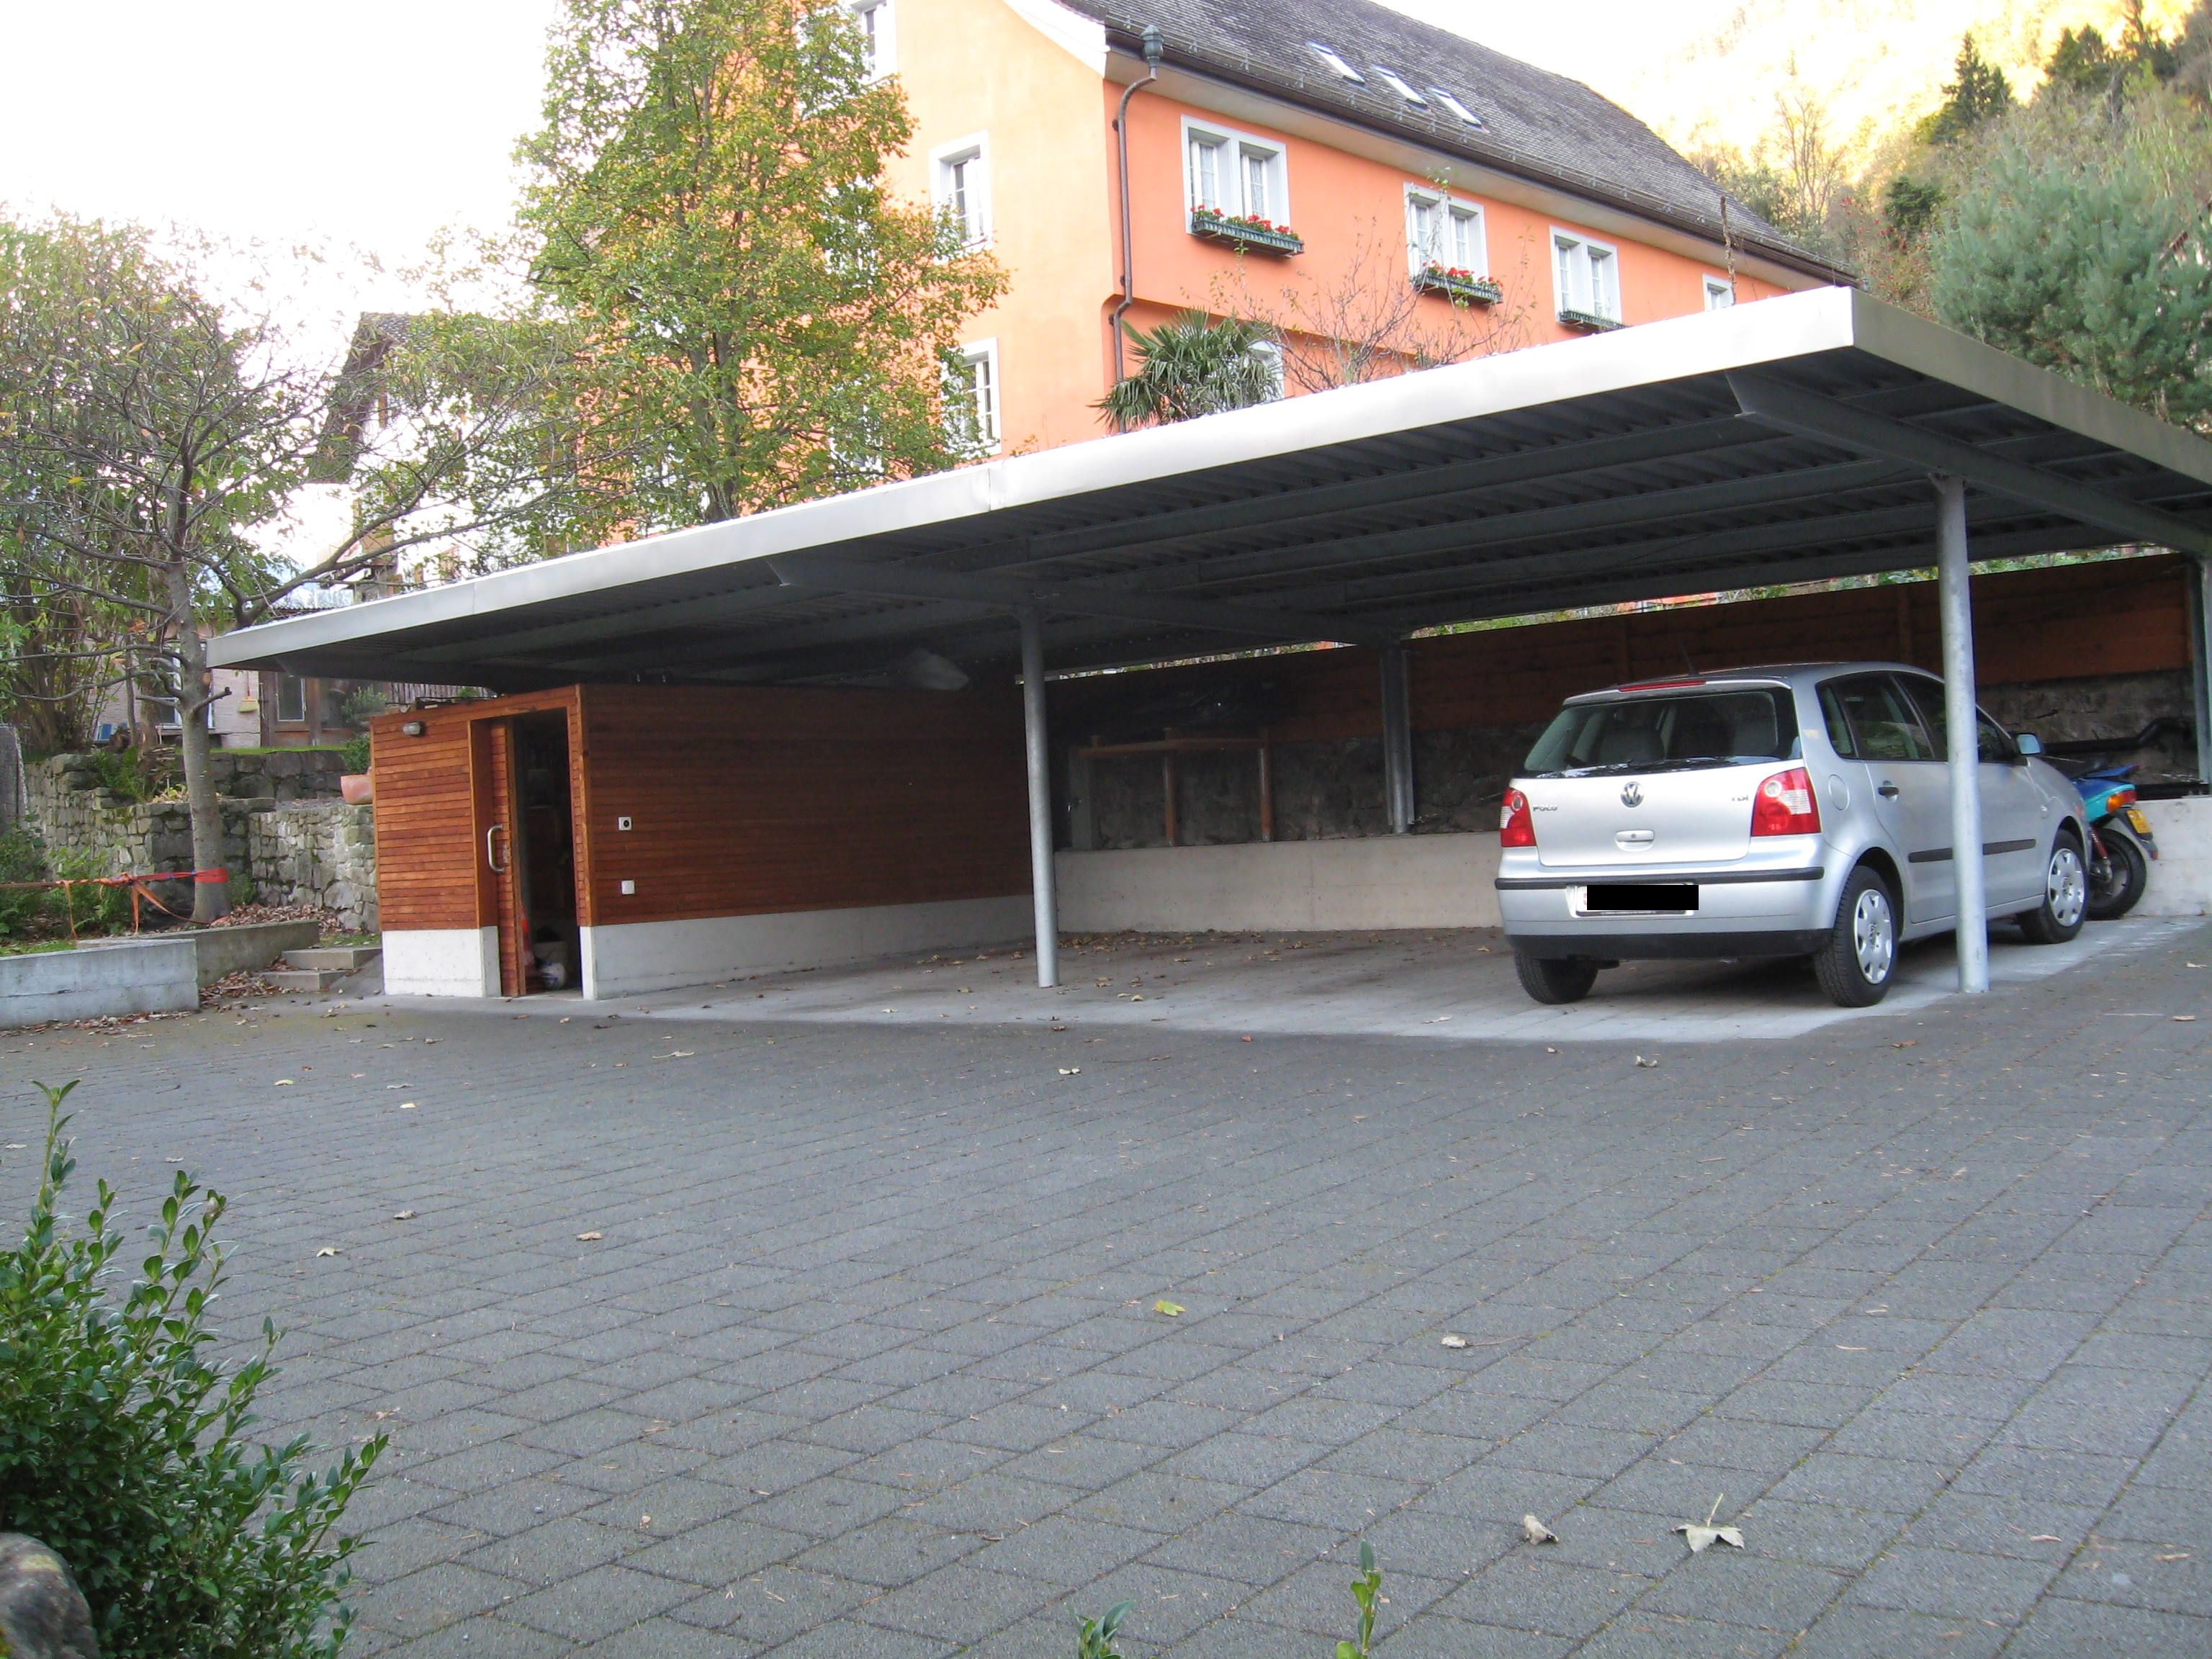 flachdach carport 6 geneigt aus stahl f r 4 autos mit grossen ger teschuppen carport. Black Bedroom Furniture Sets. Home Design Ideas